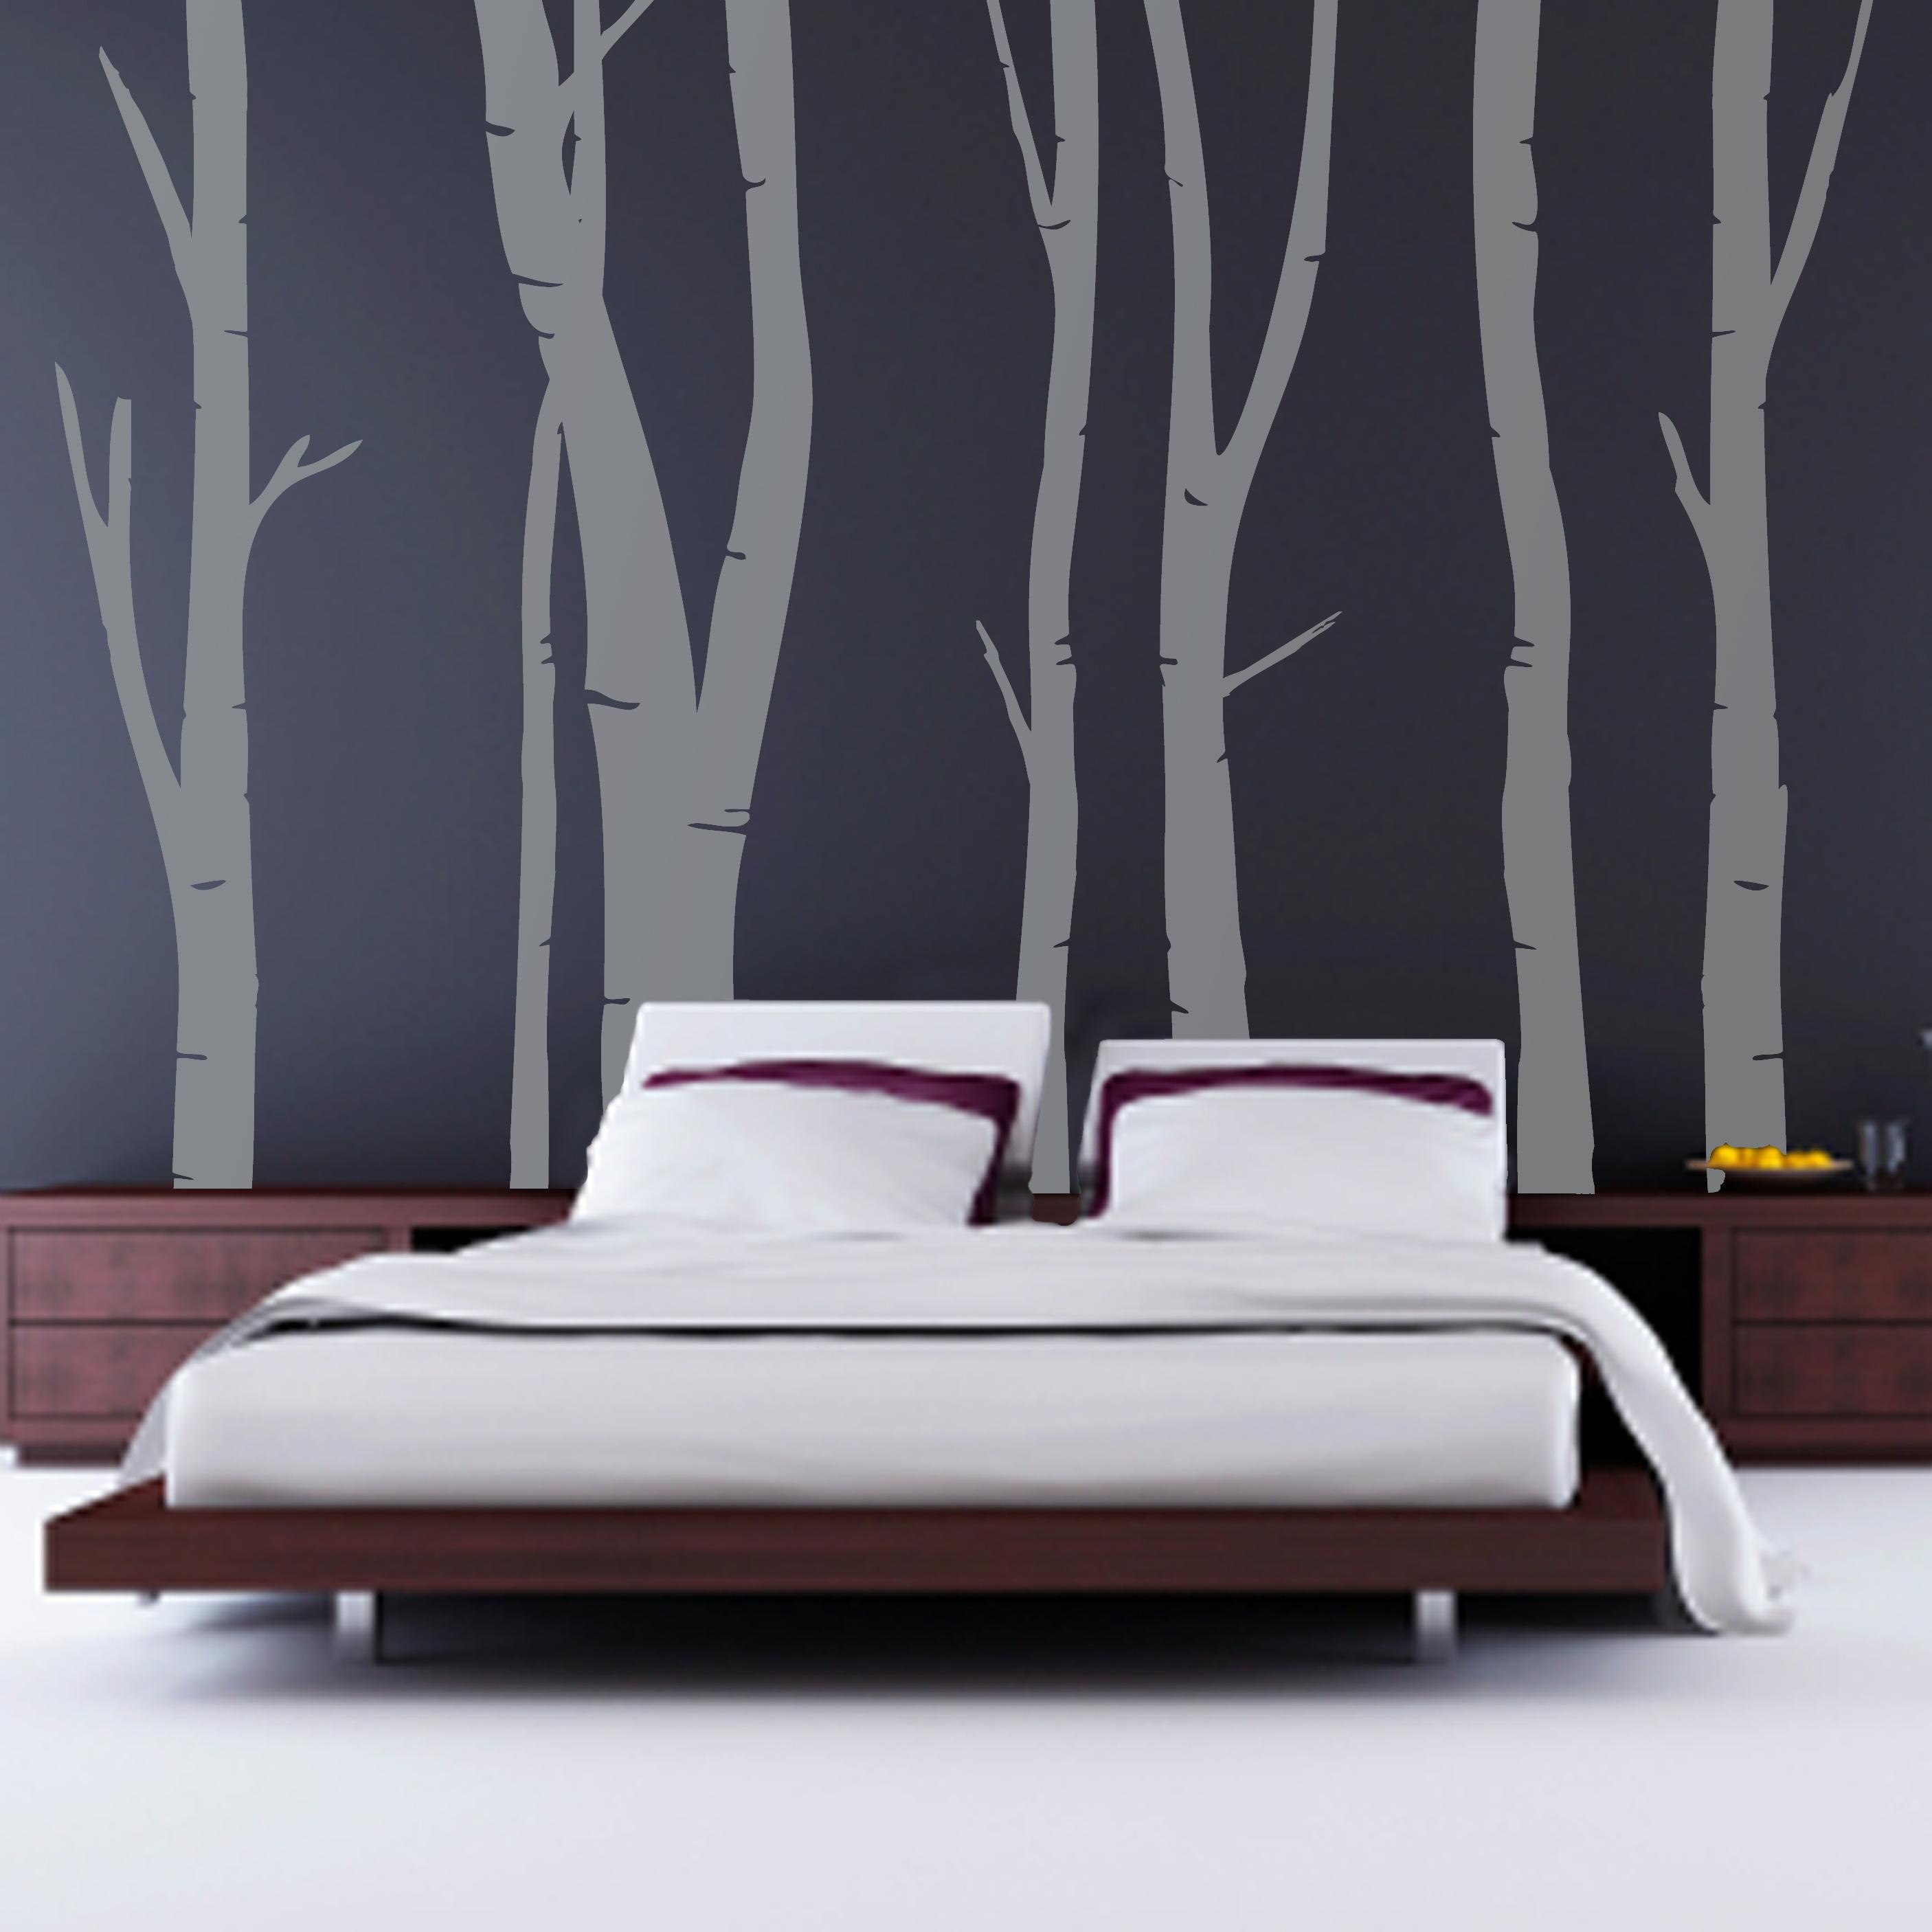 Latest Bedroom Wall Art Image On Bedroom Art Ideas Wall At Modern In Wall Art For Bedroom (View 18 of 20)